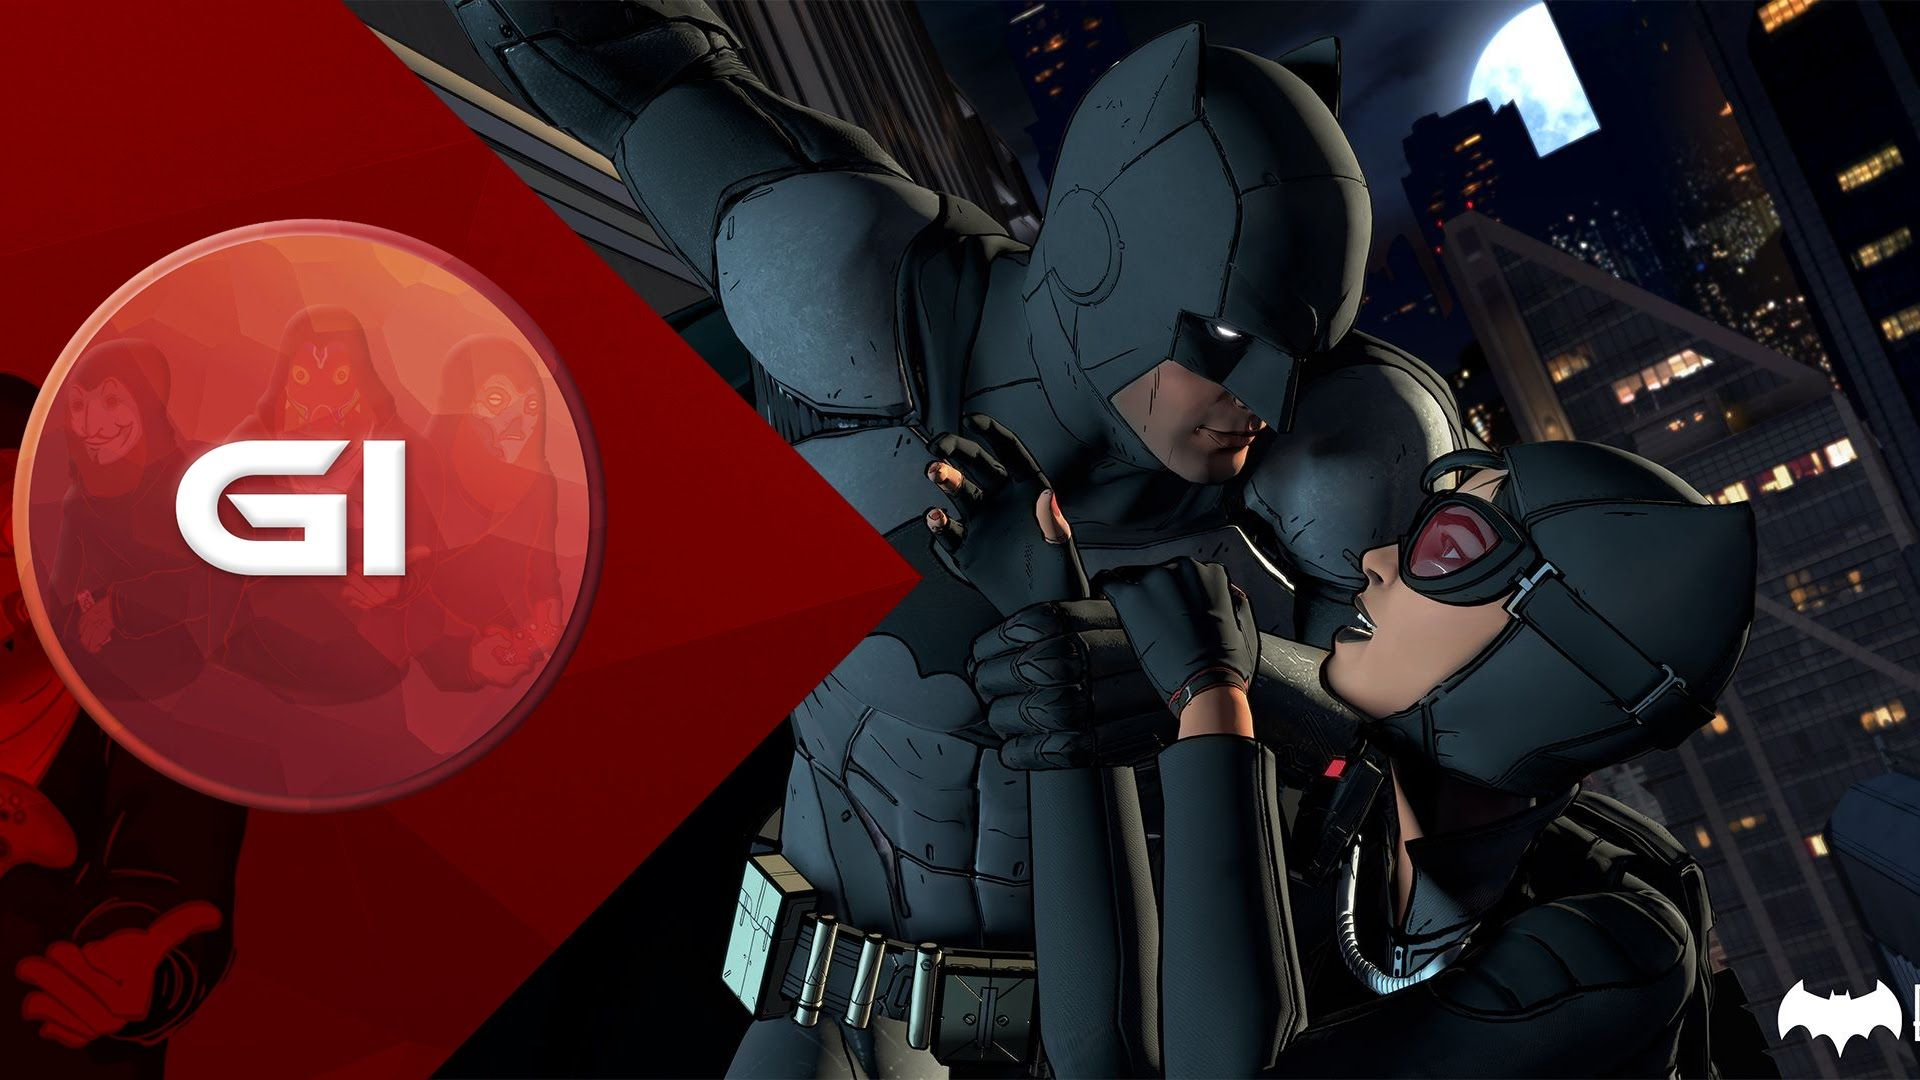 Batman Telltale Episode 1 Realm Of Shadows Walkthrough R Gaming Batman Telltale Batman Games Batman And Catwoman